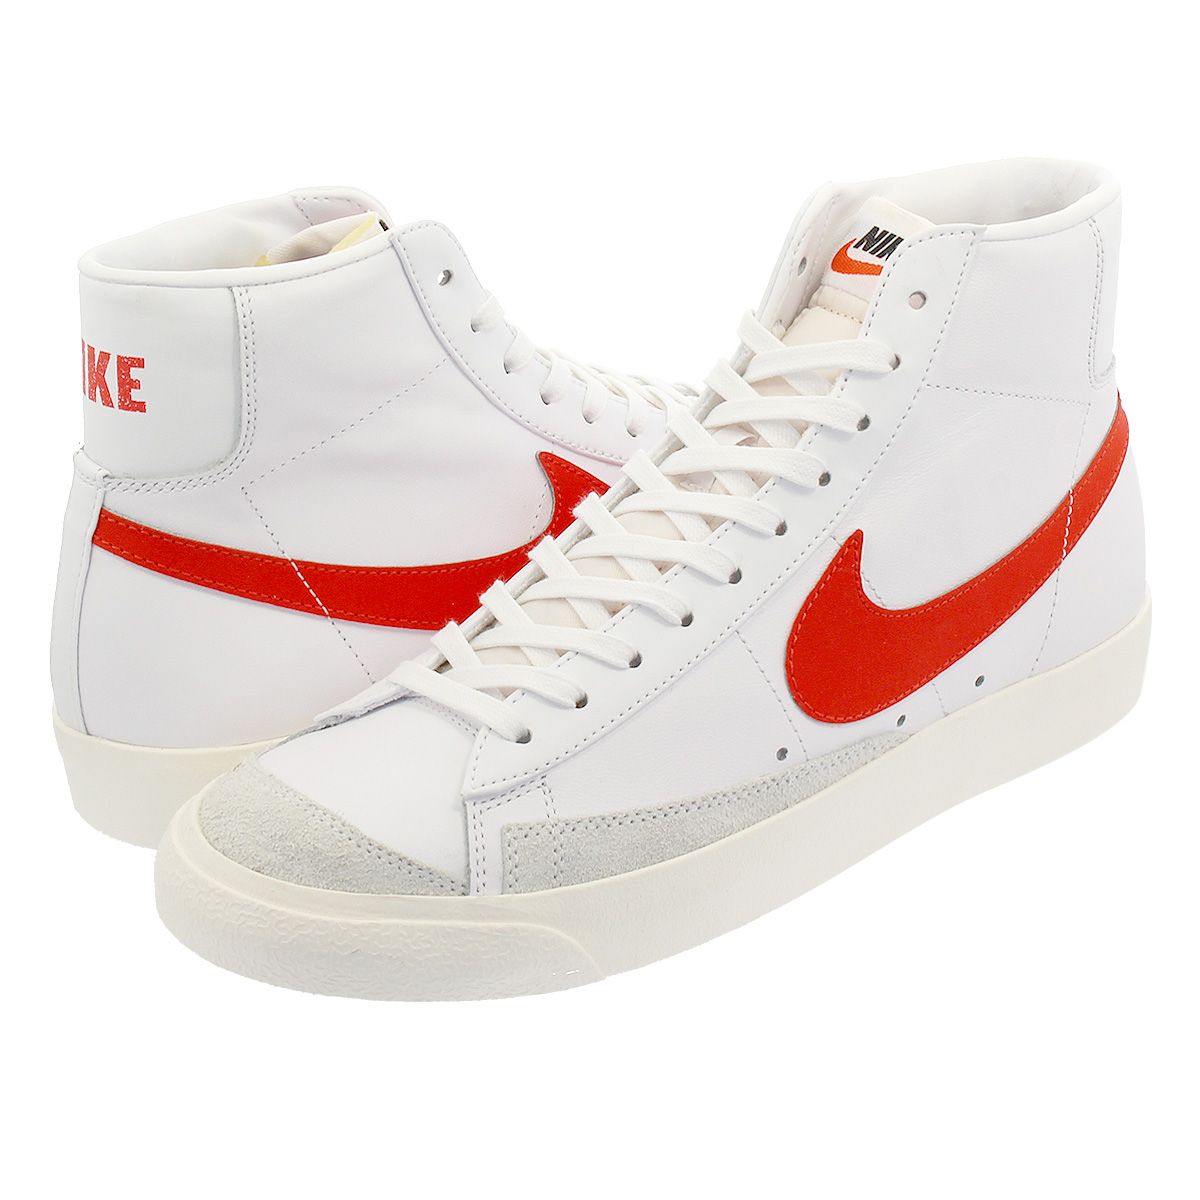 new images of speical offer professional sale NIKE BLAZER MID '77 VINTAGE Nike blazer mid '77 vintage HABANERO  RED/WHITE/SAIL bq6806-600